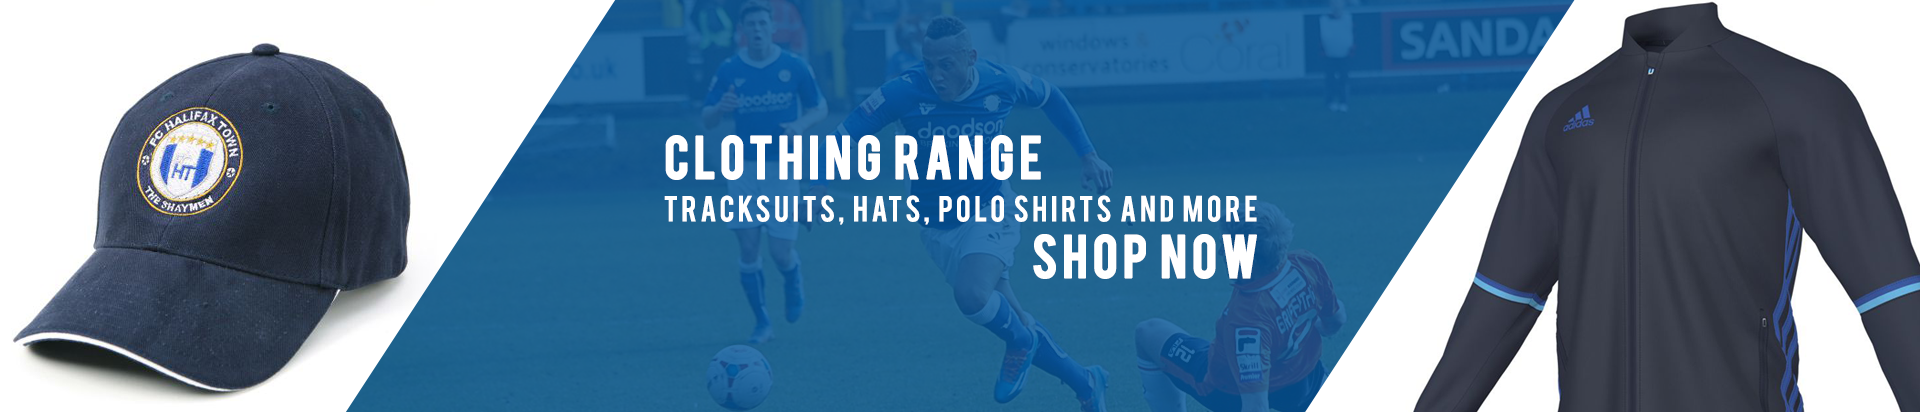 Clothing Range - Tracksuits, Hats, Polo Shirts and More - Shop Now